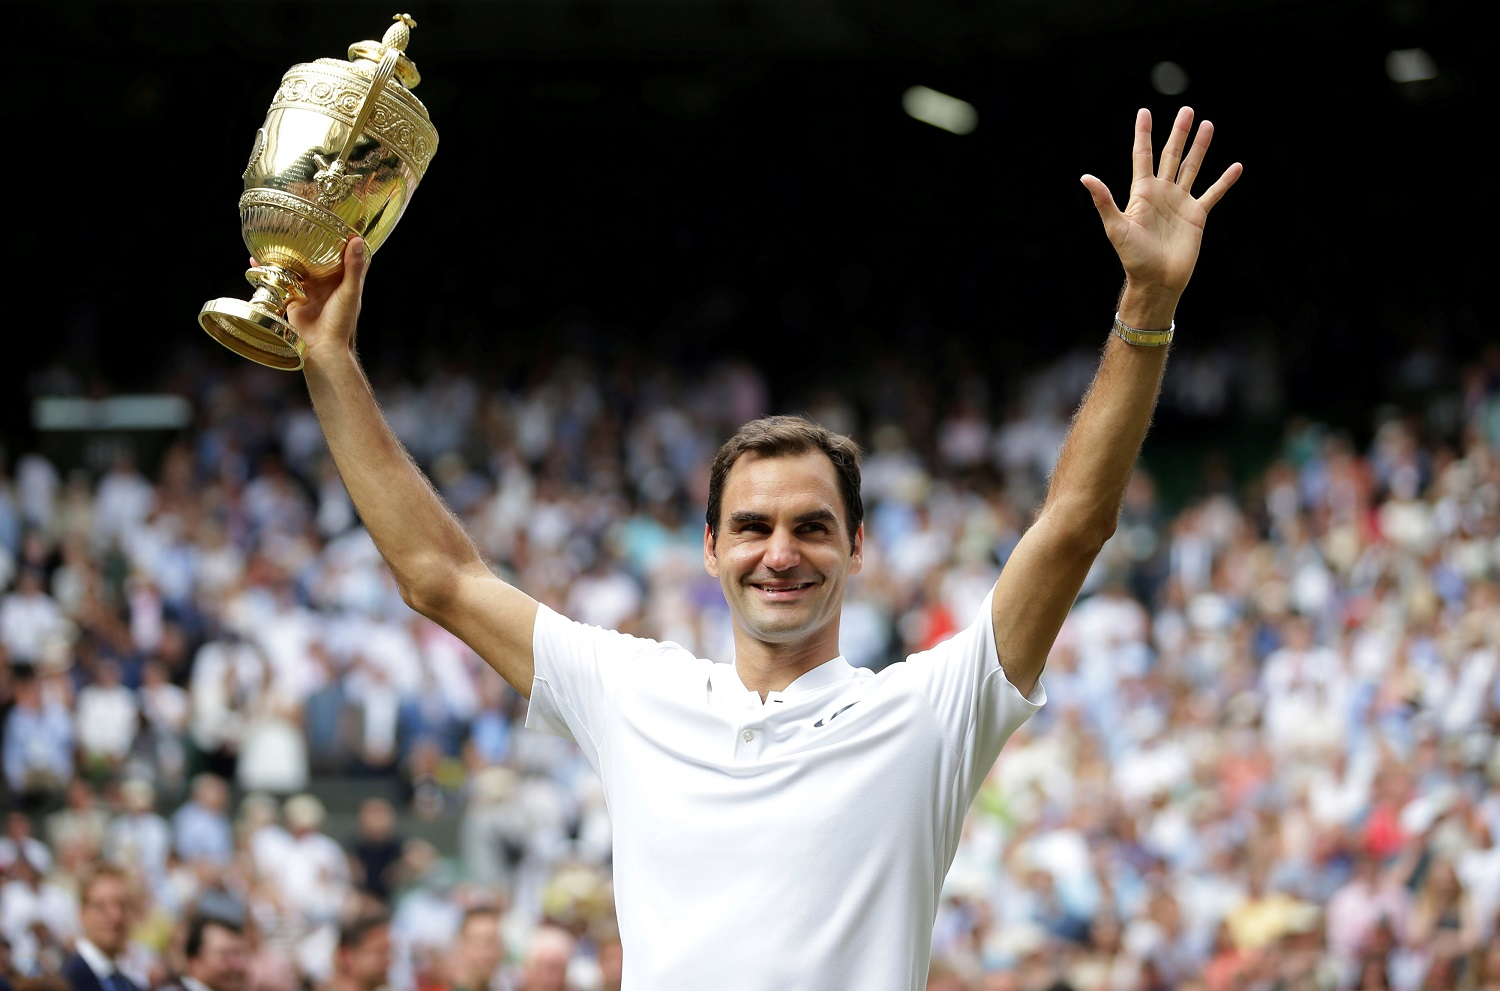 Tennis - Wimbledon - London, Britain - July 16, 2017 Switzerland's Roger Federer poses with the trophy as he celebrates winning the final against Croatia's Marin Cilic REUTERS/Daniel Leal-Olivas/Pool TPX IMAGES OF THE DAY